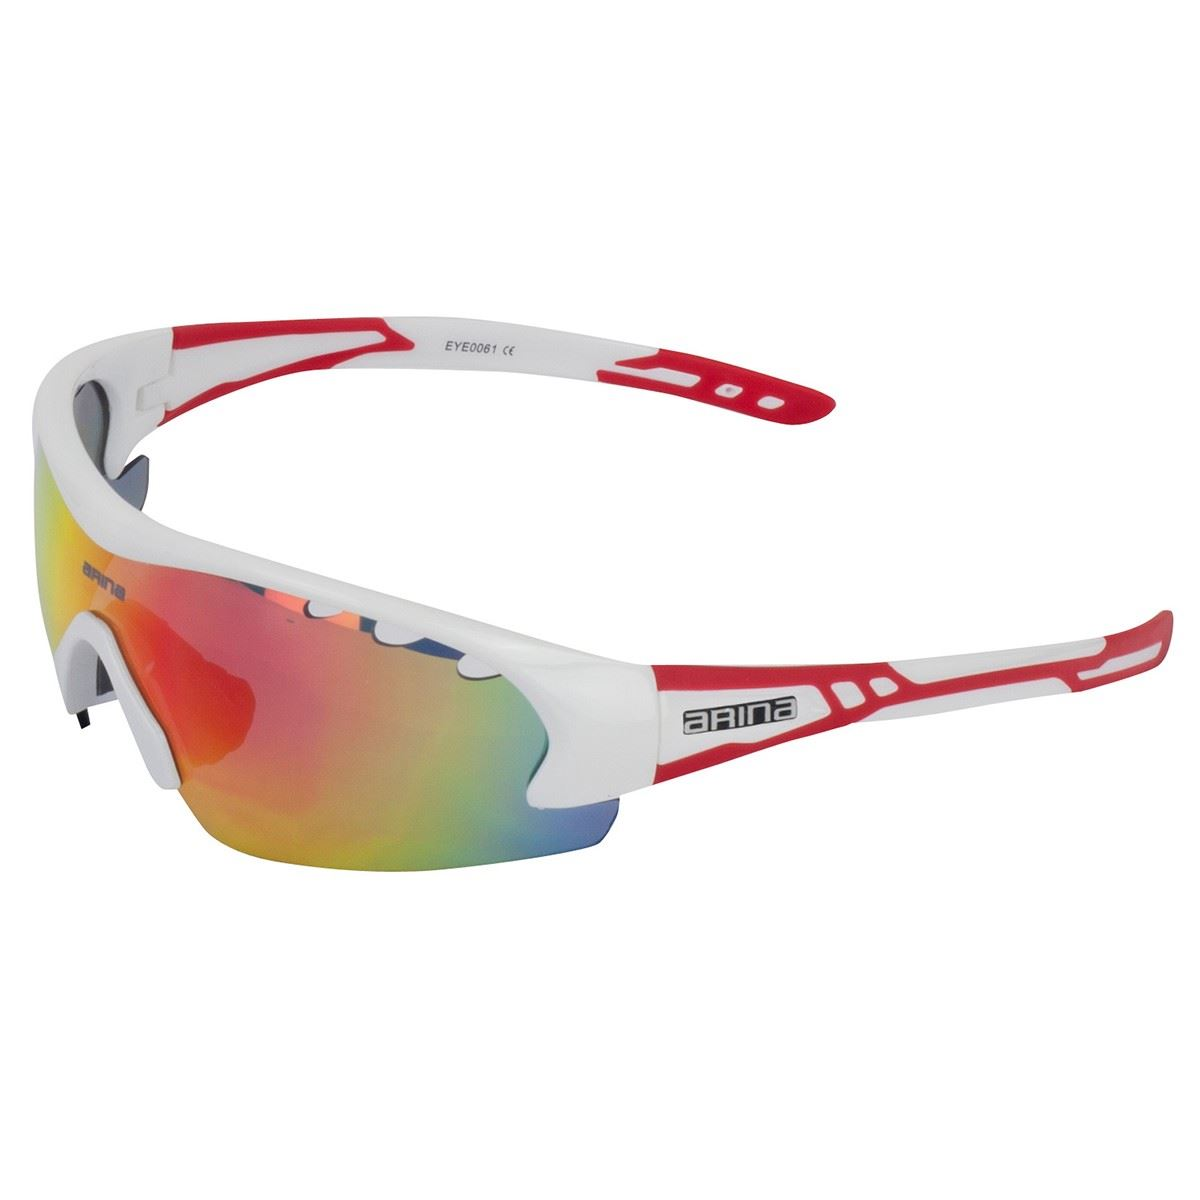 Bikeit poids léger Arina Revolution Cyclisme Lunettes CE Approved performence